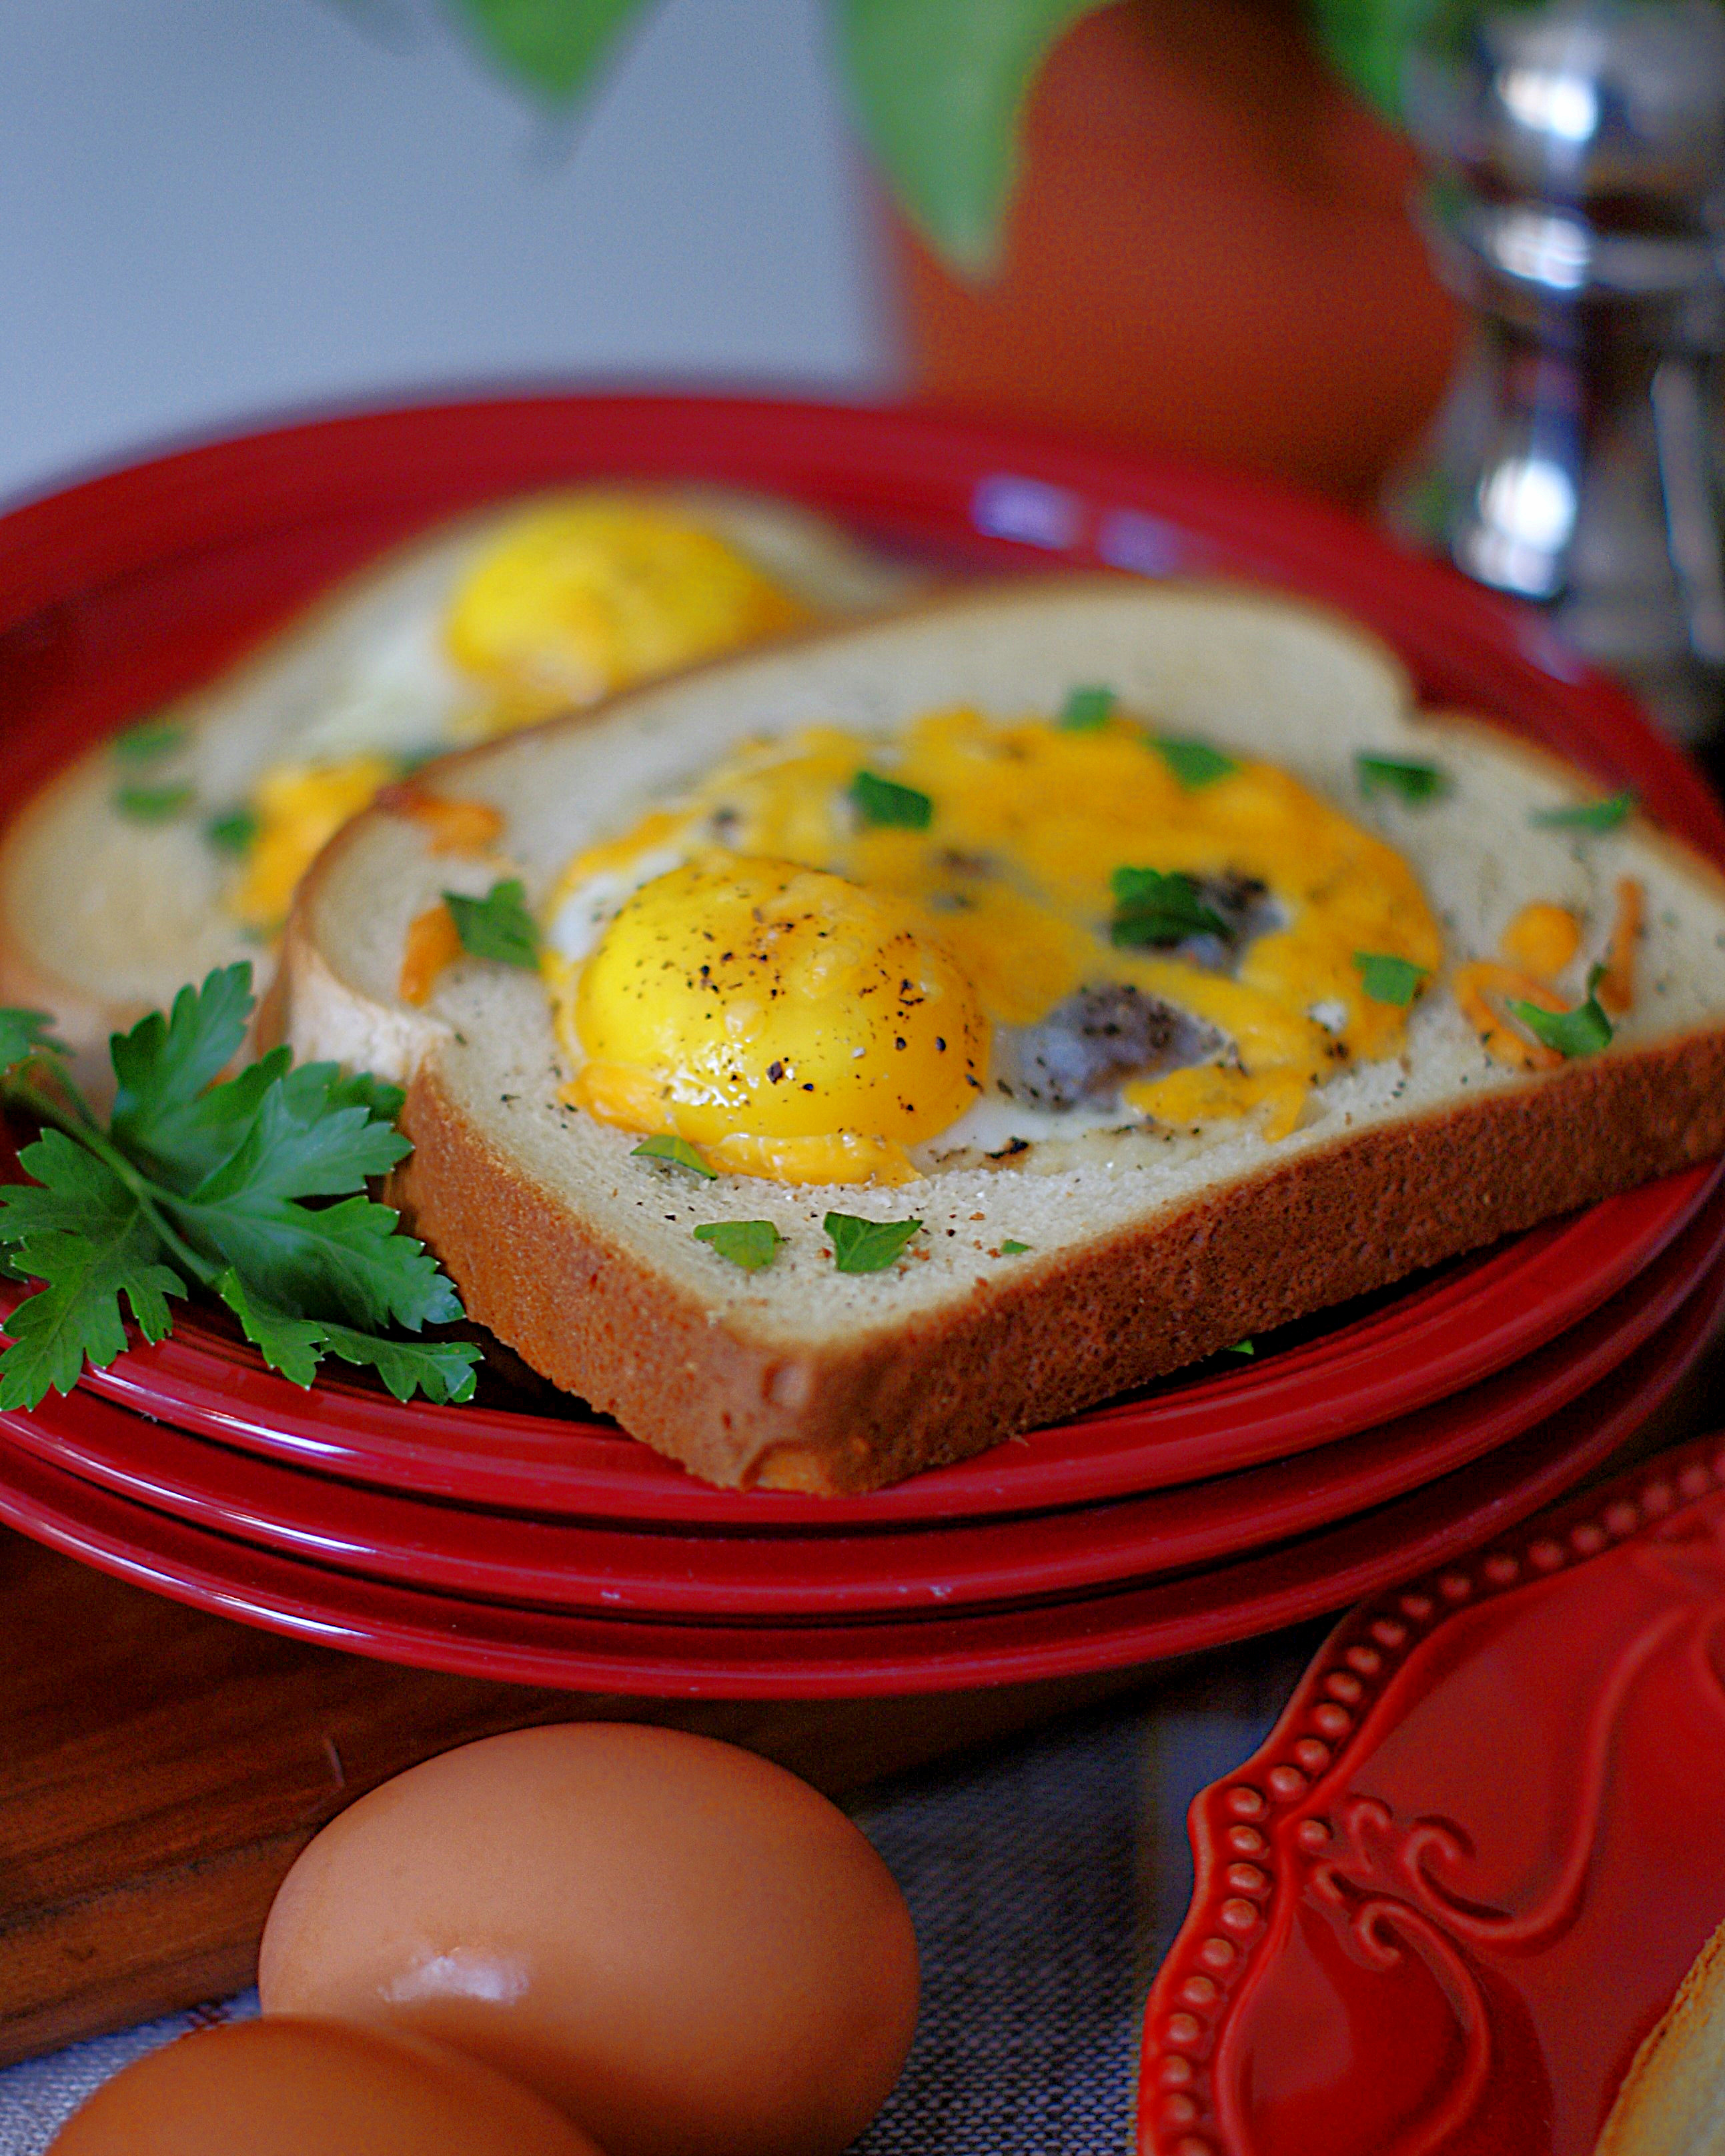 2 eggs in a basket on one plate.